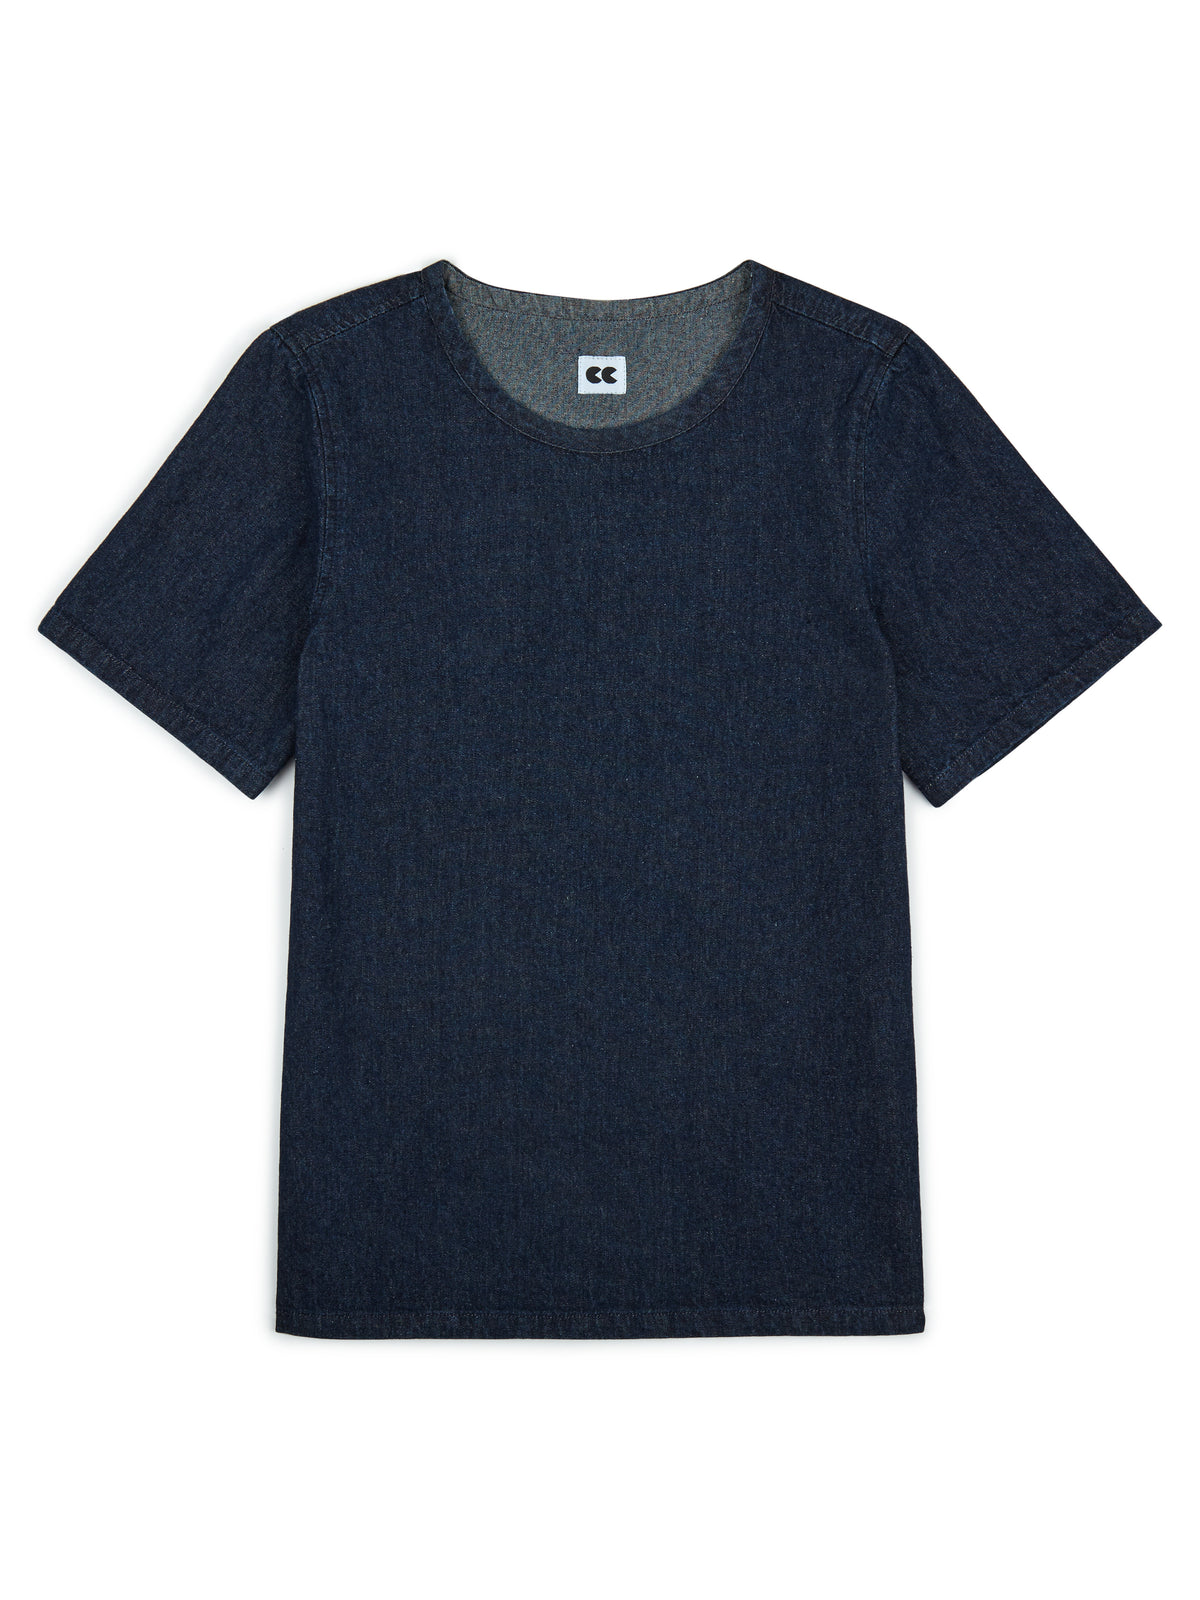 Women's Denim Smock Top - Community Clothing